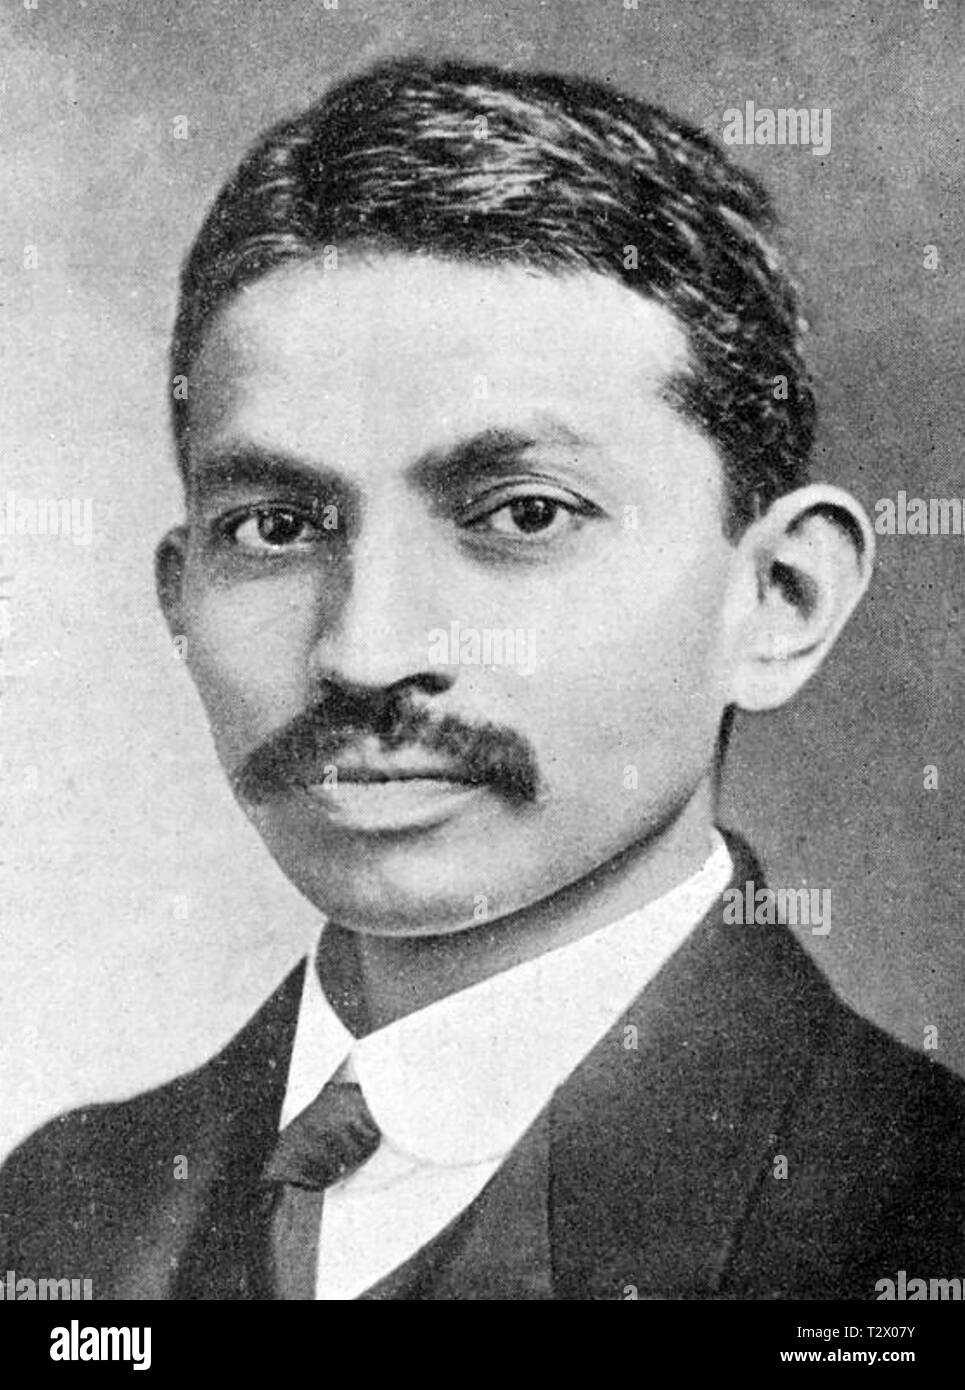 MAHATMA GANDHI (1869-1948) Indian political activist about 1890 - Stock Image